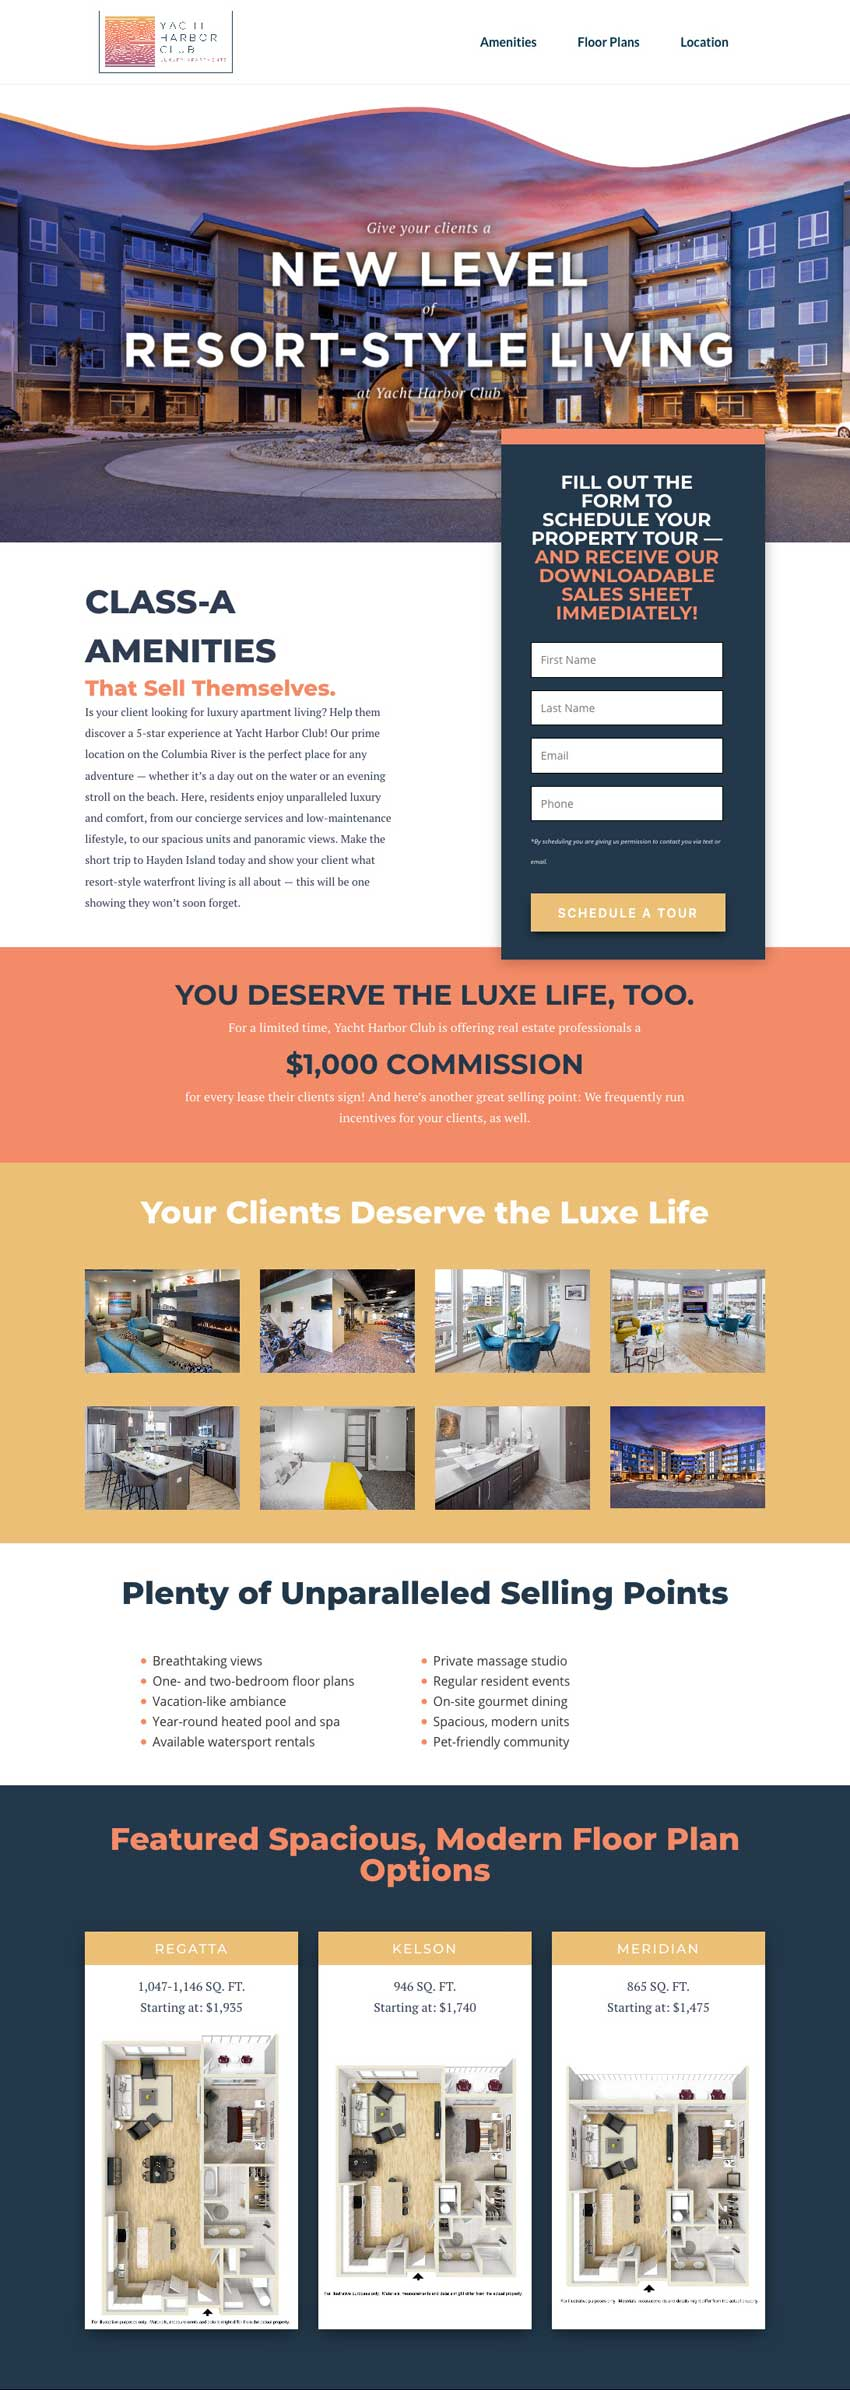 Campus Advantage Realtor campaign for Yacht Harbor landing page